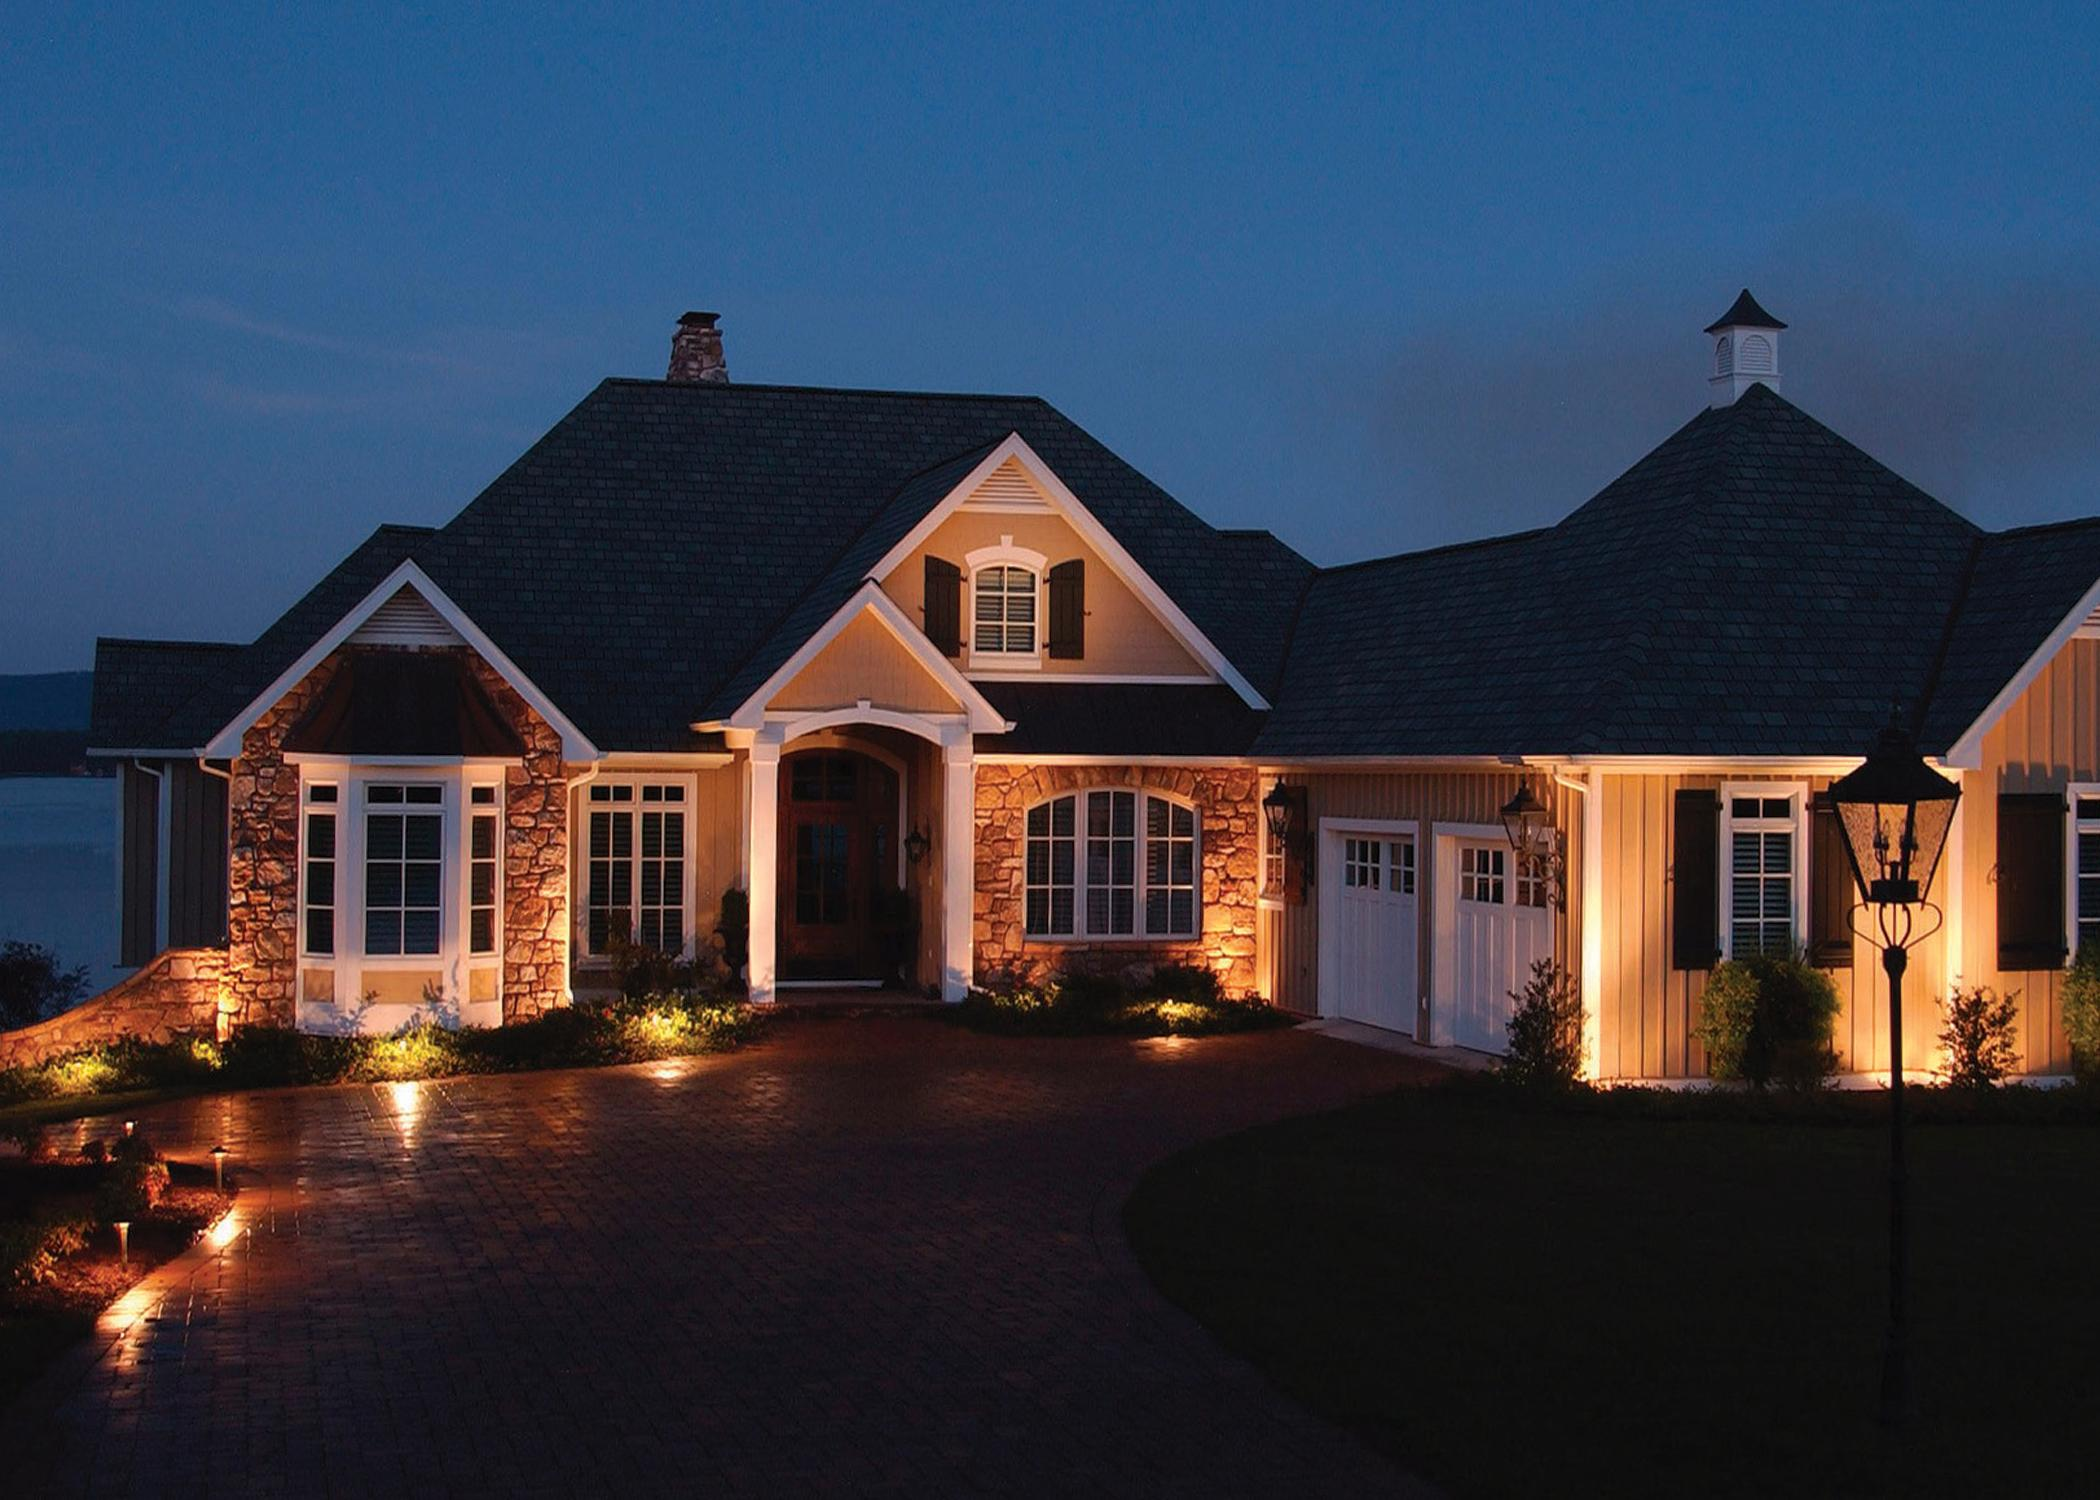 Outdoor Lighting Perspectives residential lighting in the Dayton, Ohio area